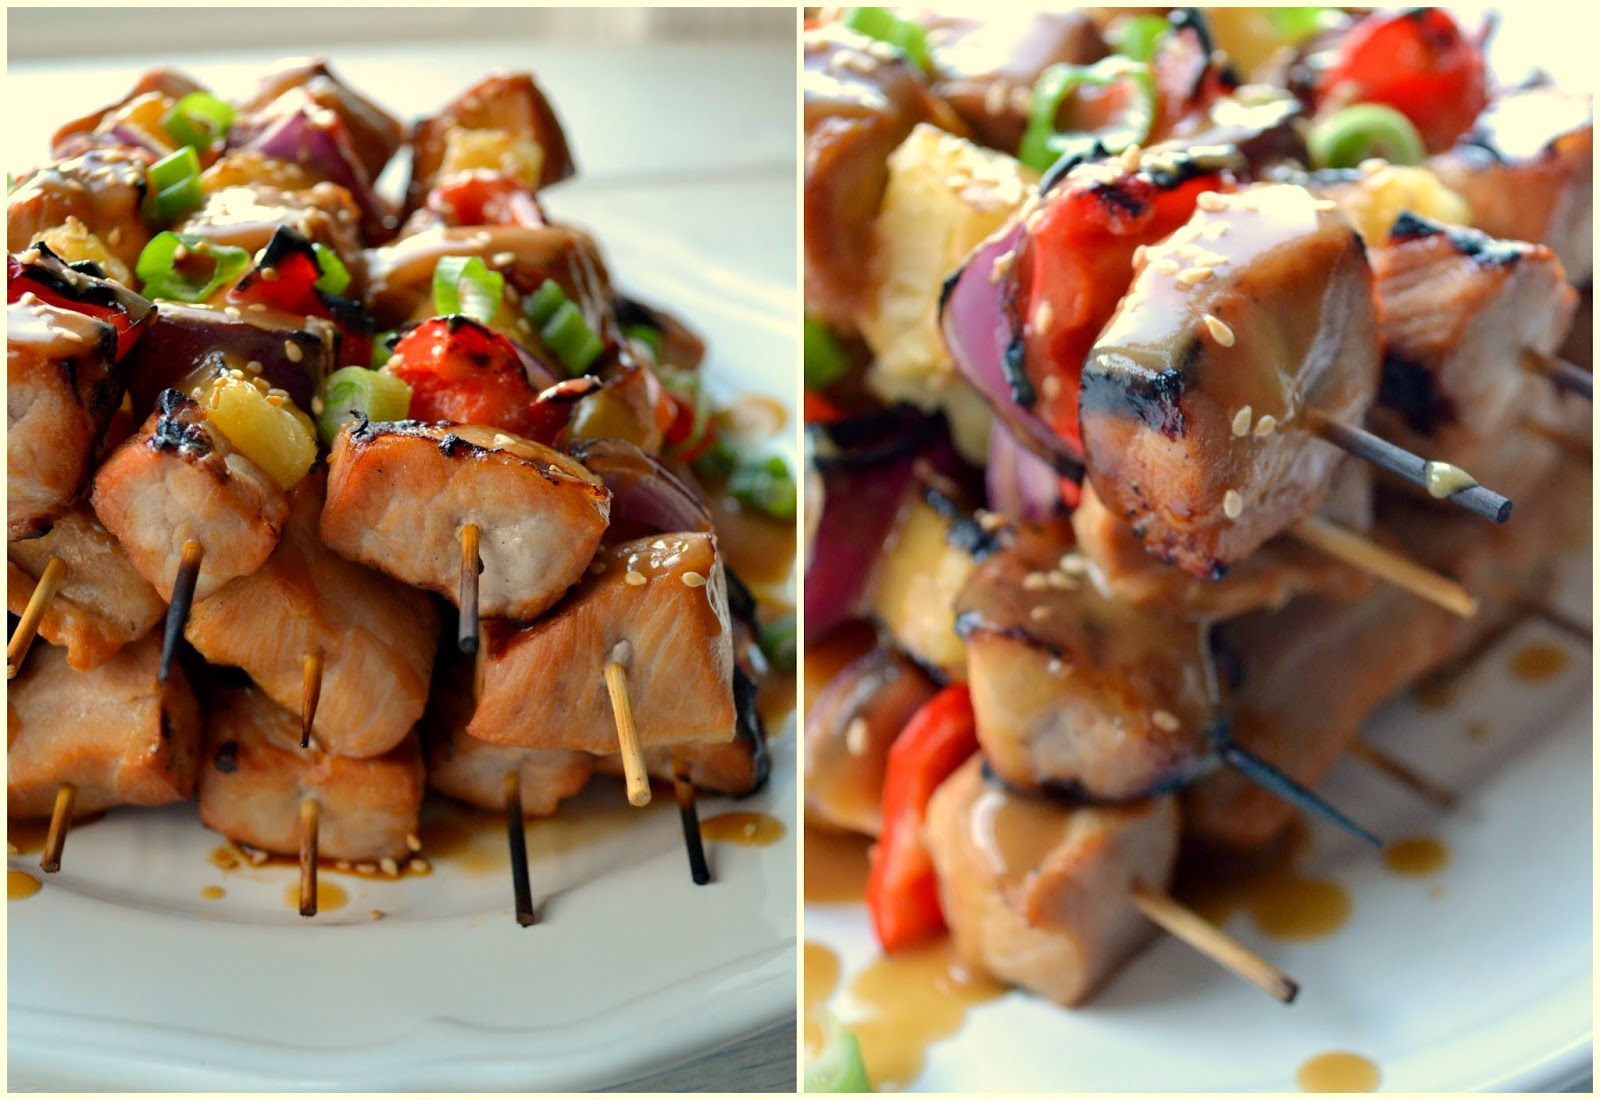 Family Feedbag: Pork & Pineapple Skewers